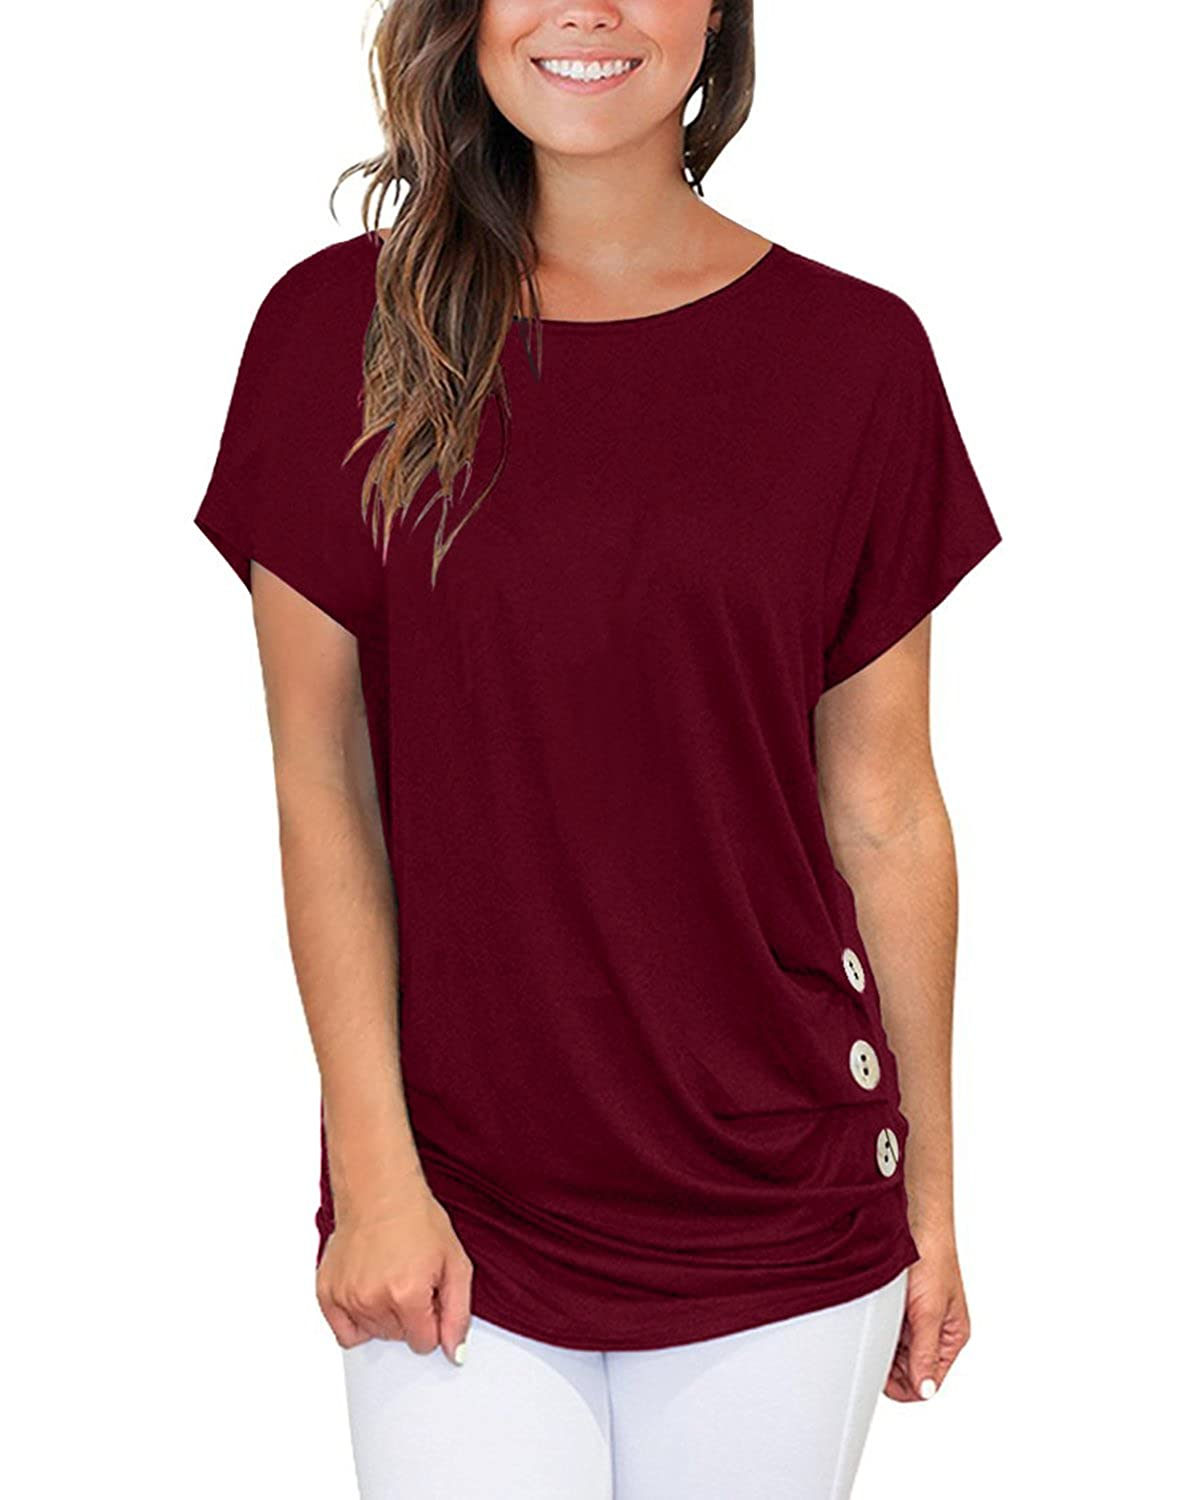 SUNNYME Summer Tops for Women Shirts Plus Size Cute Tunics Tops Casual Short Sleeve T Shirts